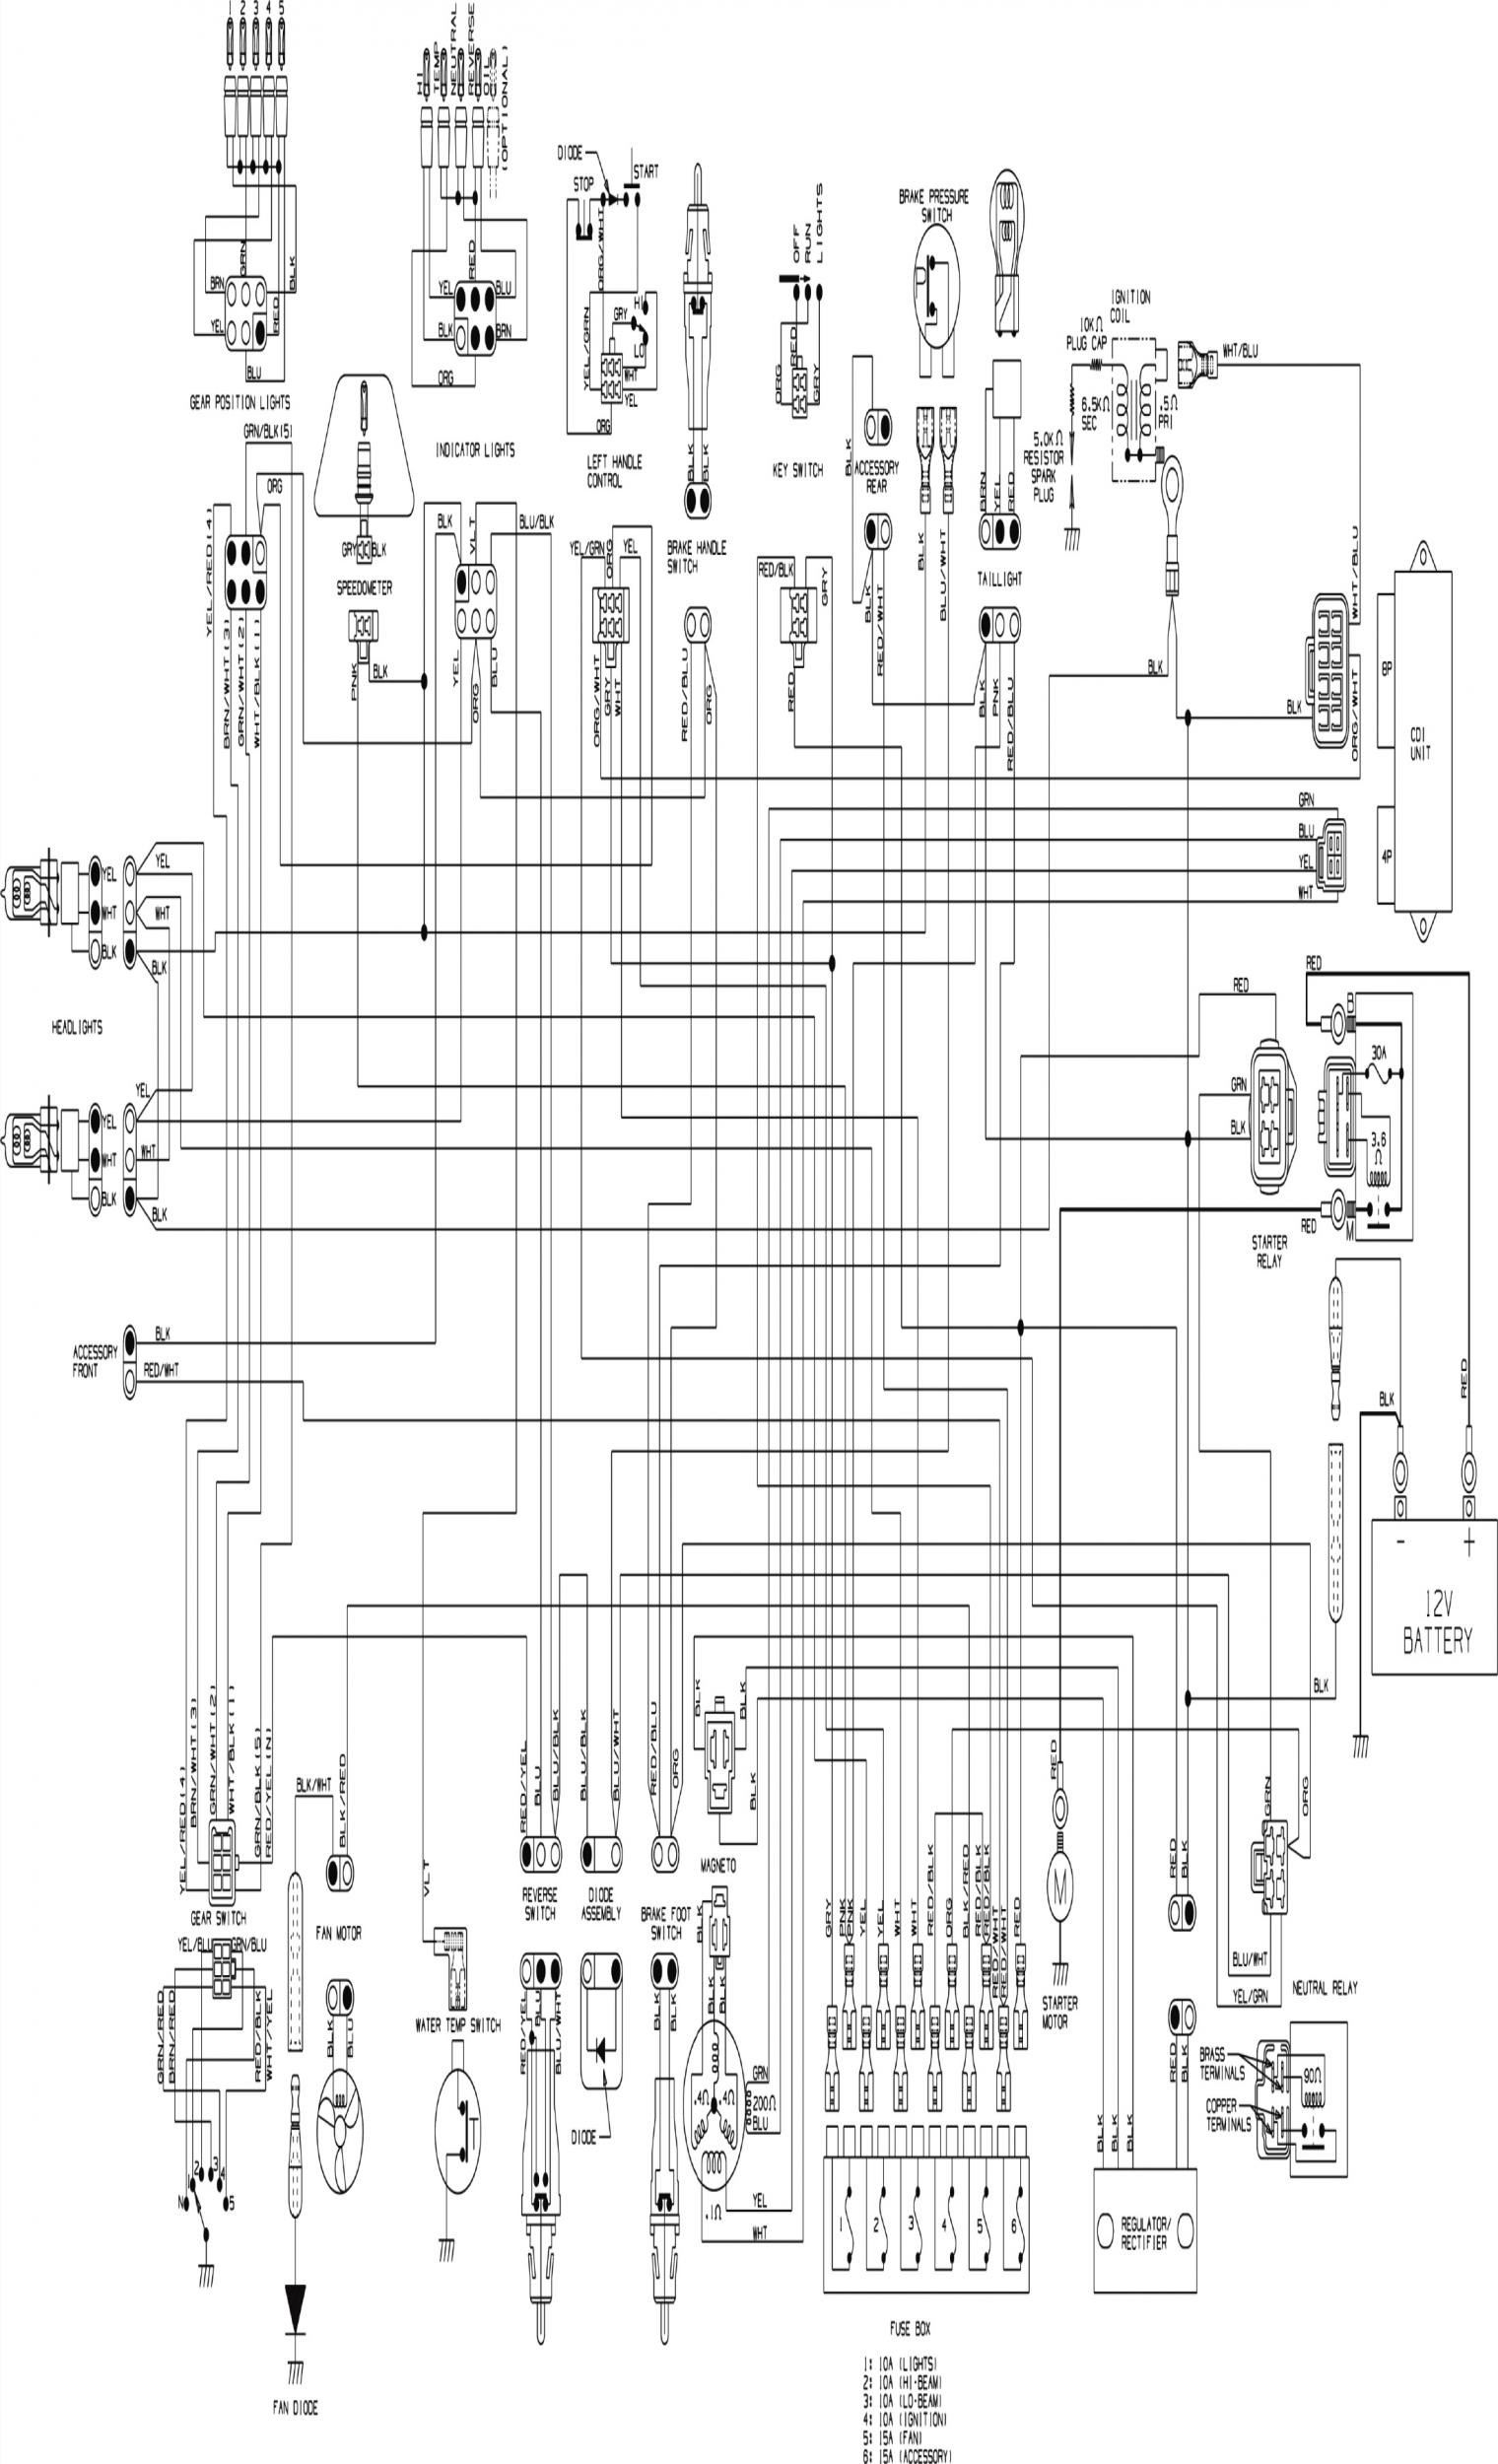 2000 s10 speaker wiring diagram furnace arctic cat parts my